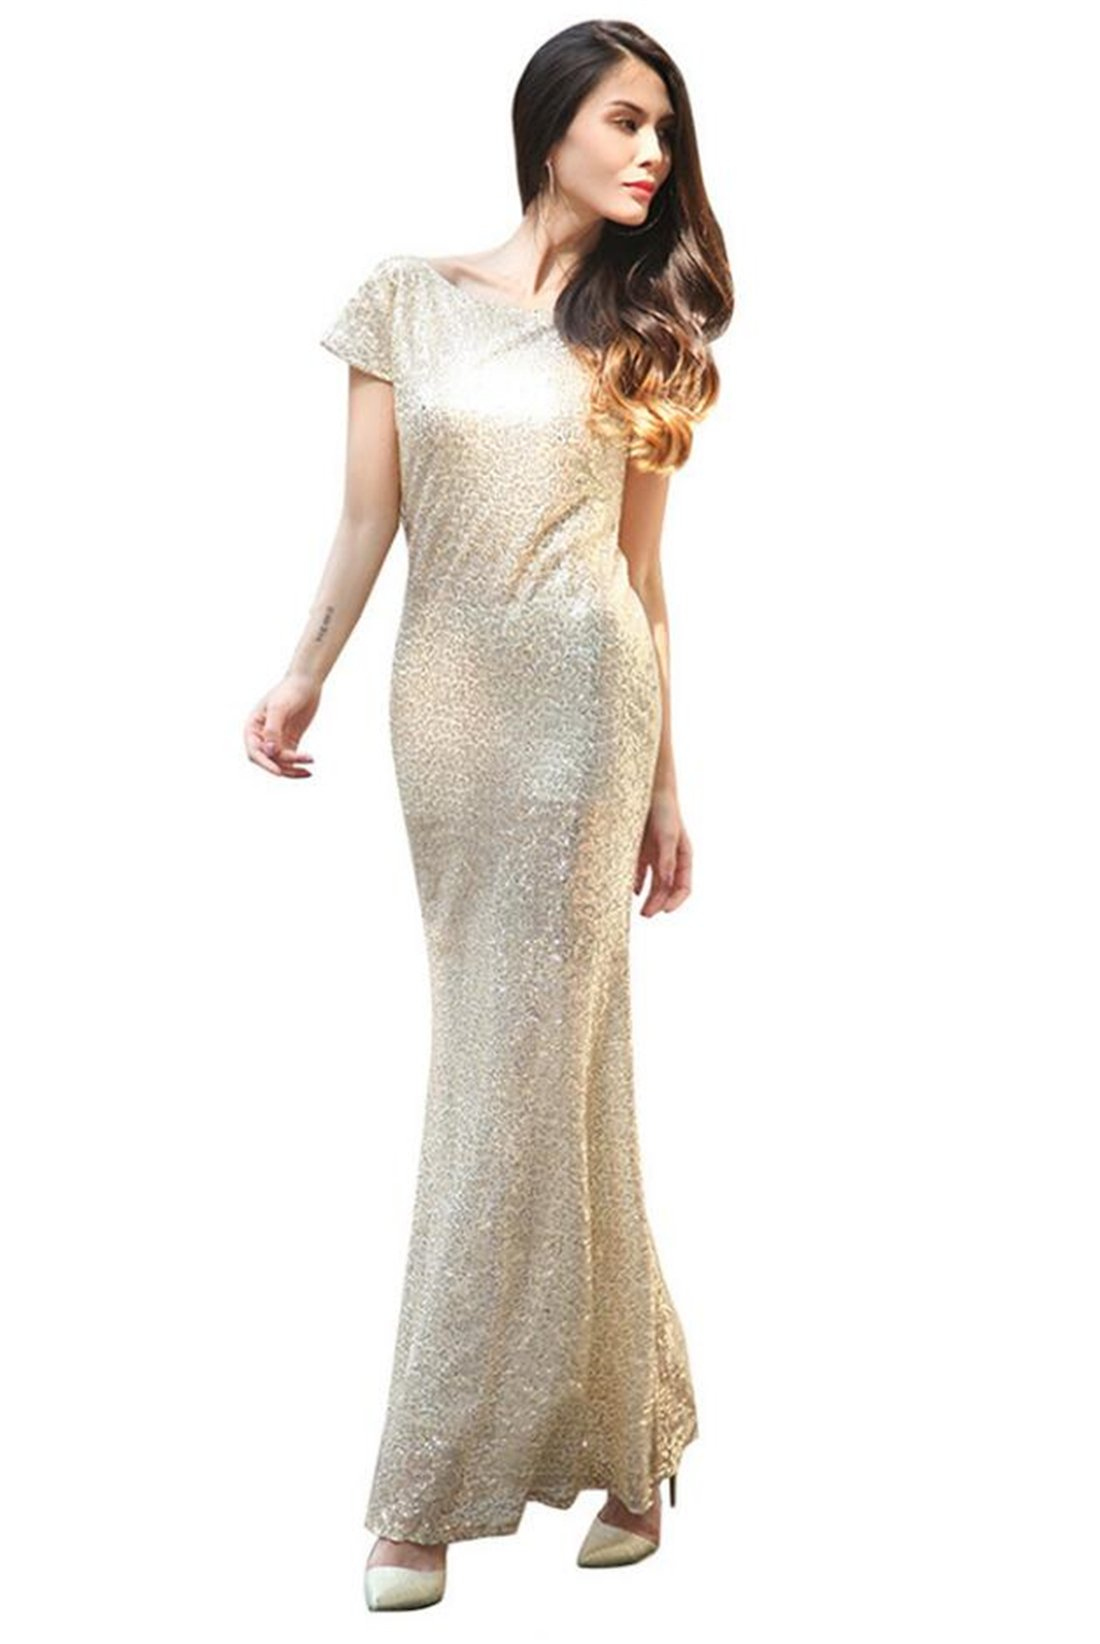 Tmrow 1pc Women Sparkly Bridesmaid Dress Long Sequin Wedding Party Prom Gown,XXL